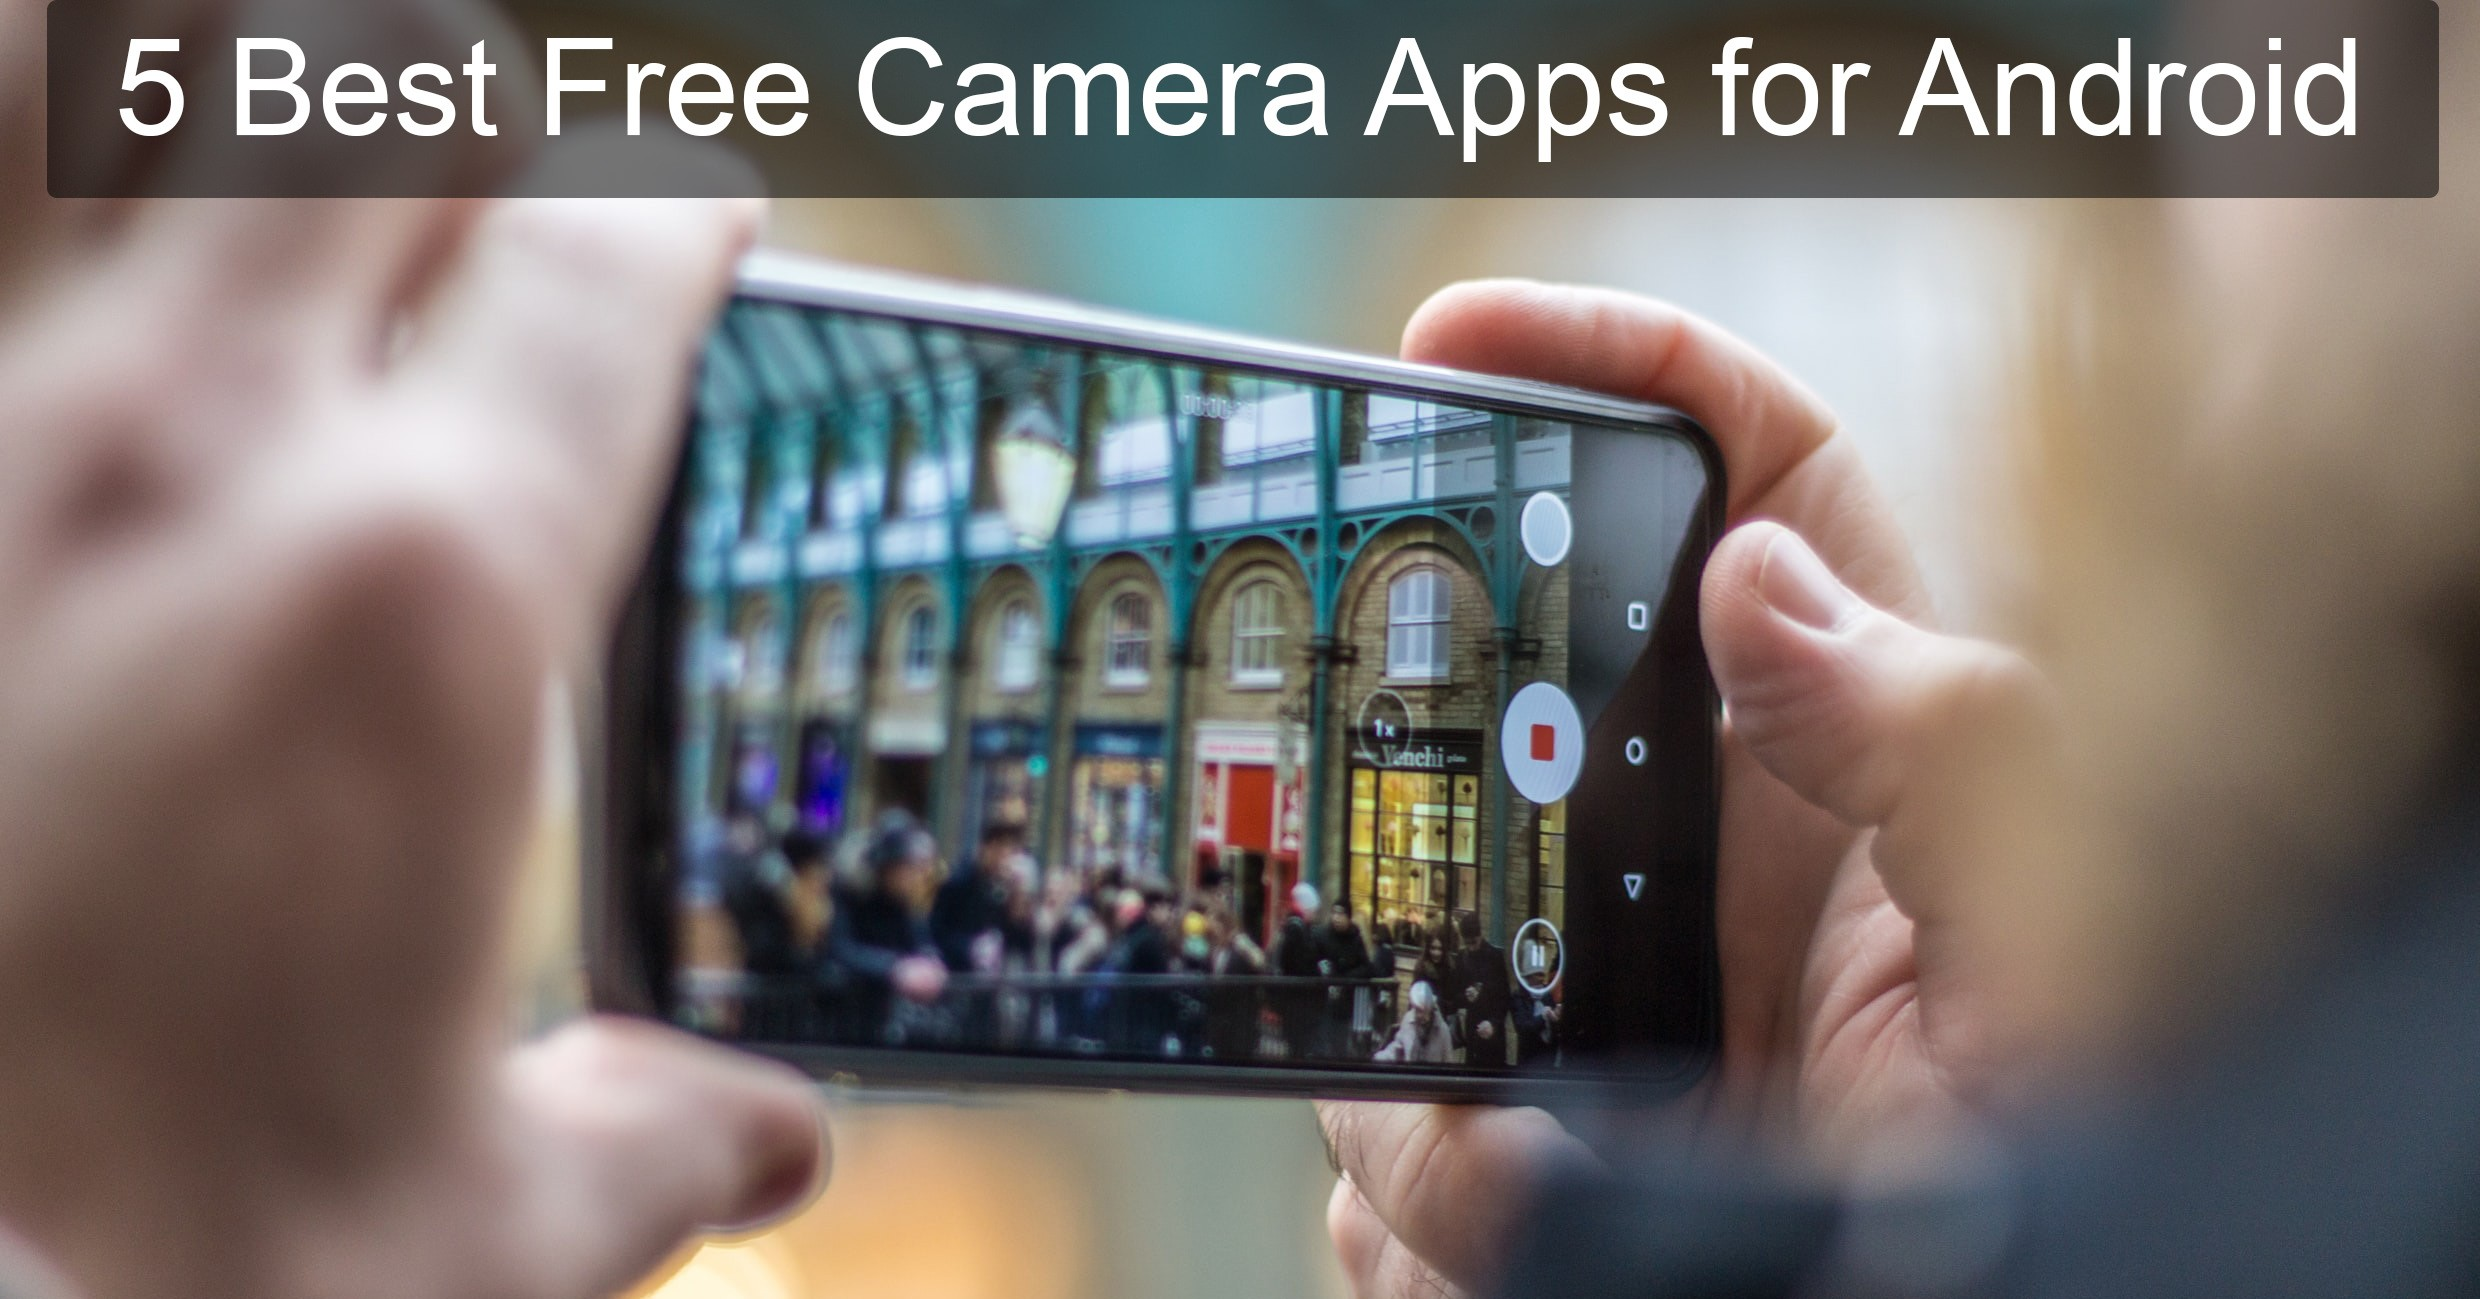 5 Best Free Camera Apps for Android